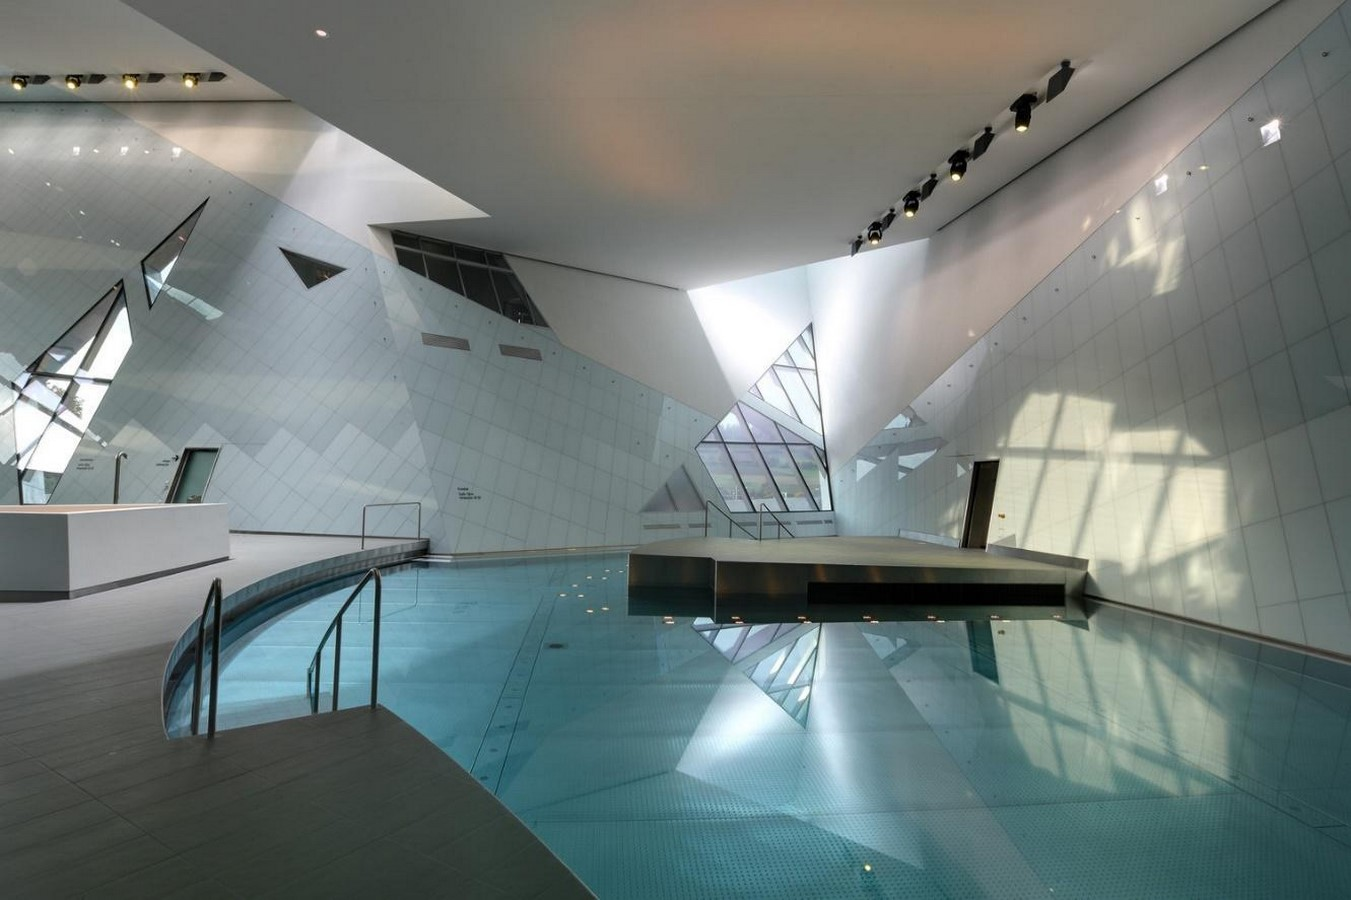 Westside Shopping and Leisure Centre by Daniel Libeskind: Unification of commerce, culture and leisure - Sheet7